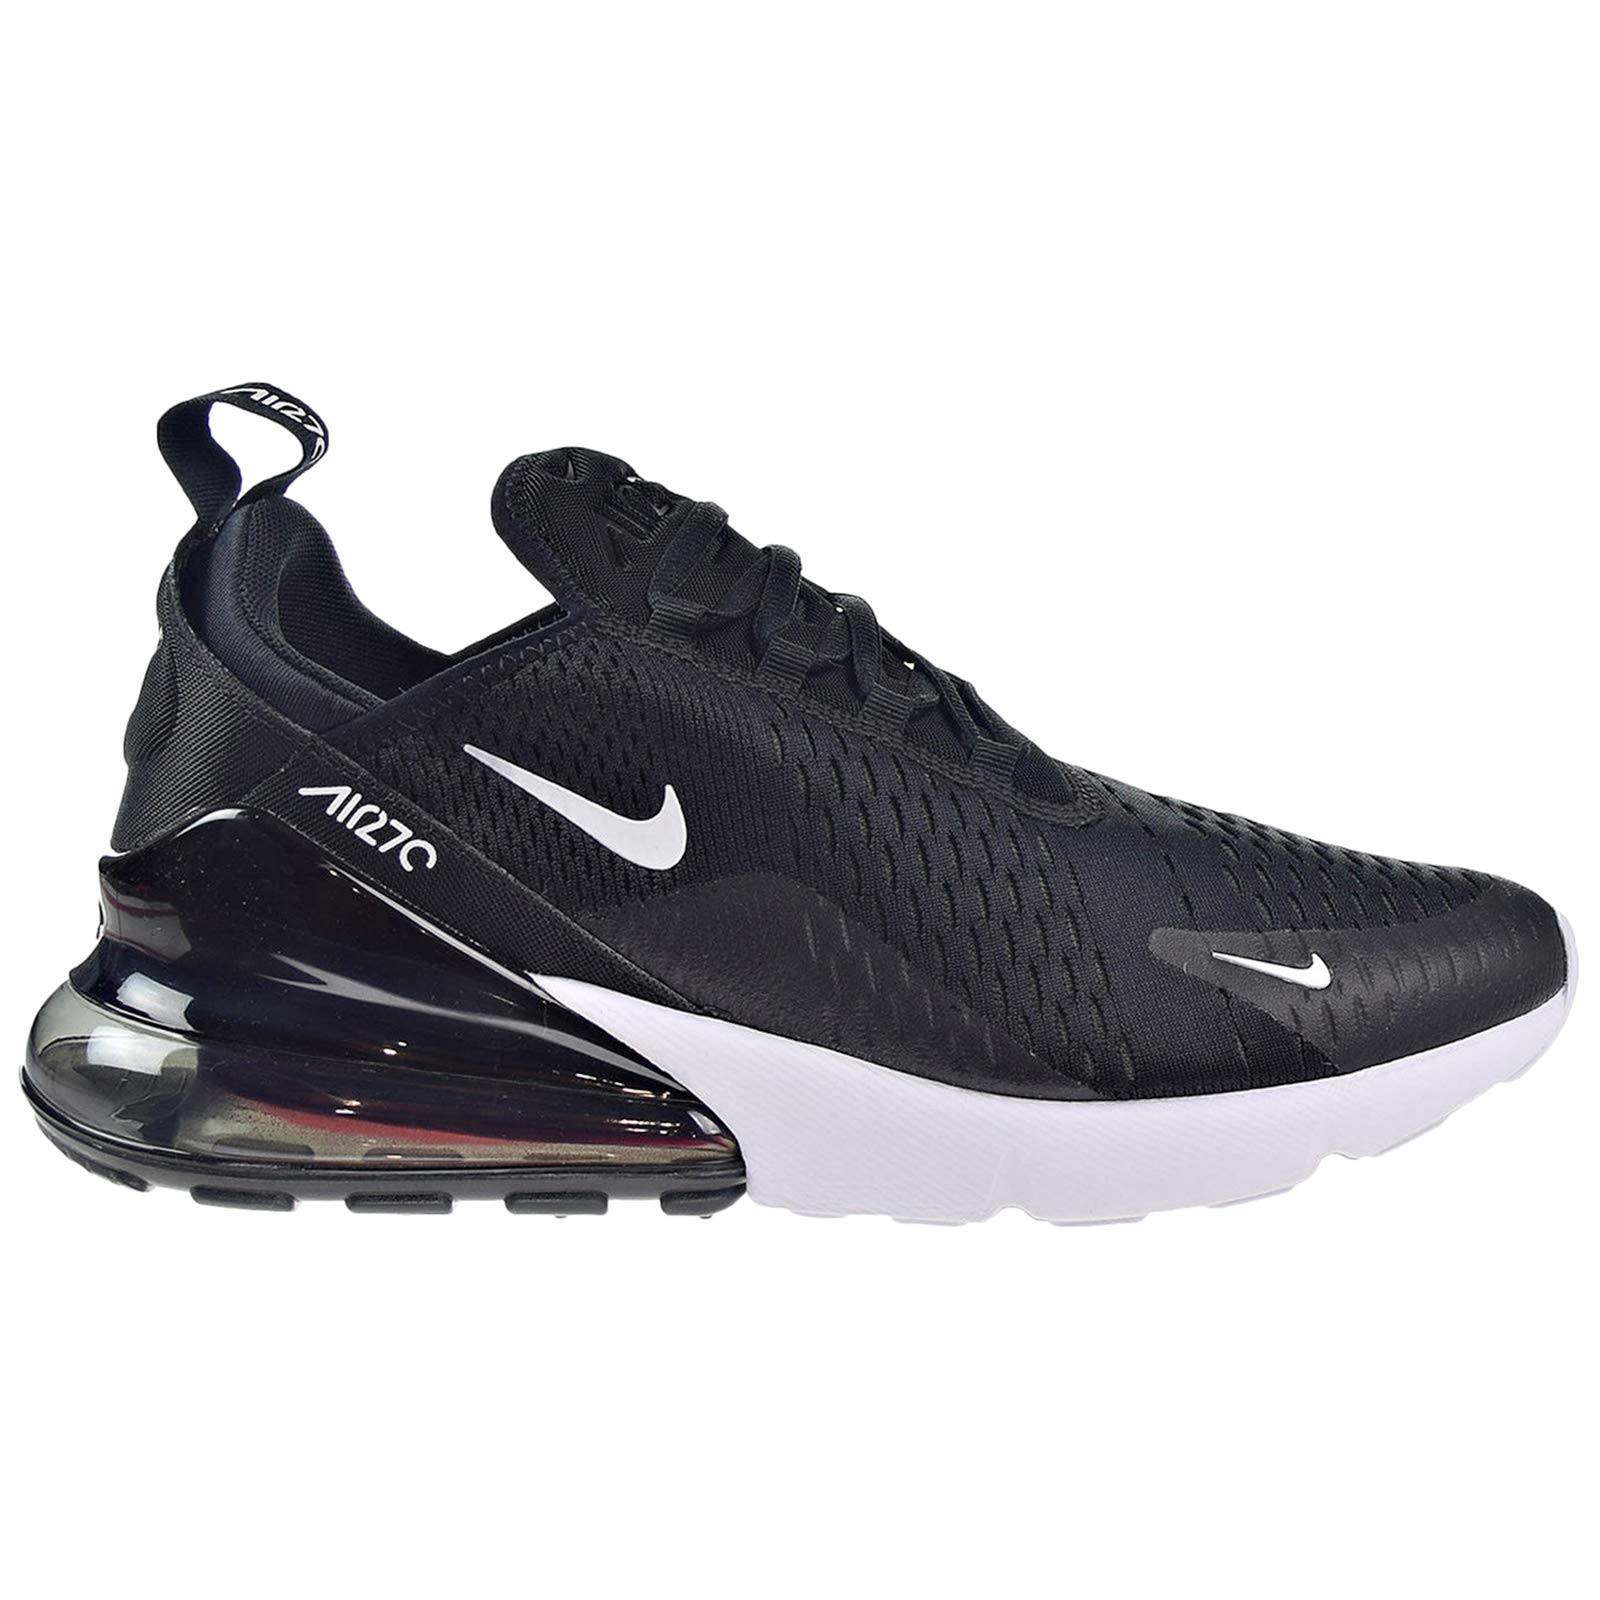 top fashion 53512 8c10a Galleon - Nike Mens Air Max 270 Running Shoes Black White Solar  Red Anthracite AH8050-002 Size 10